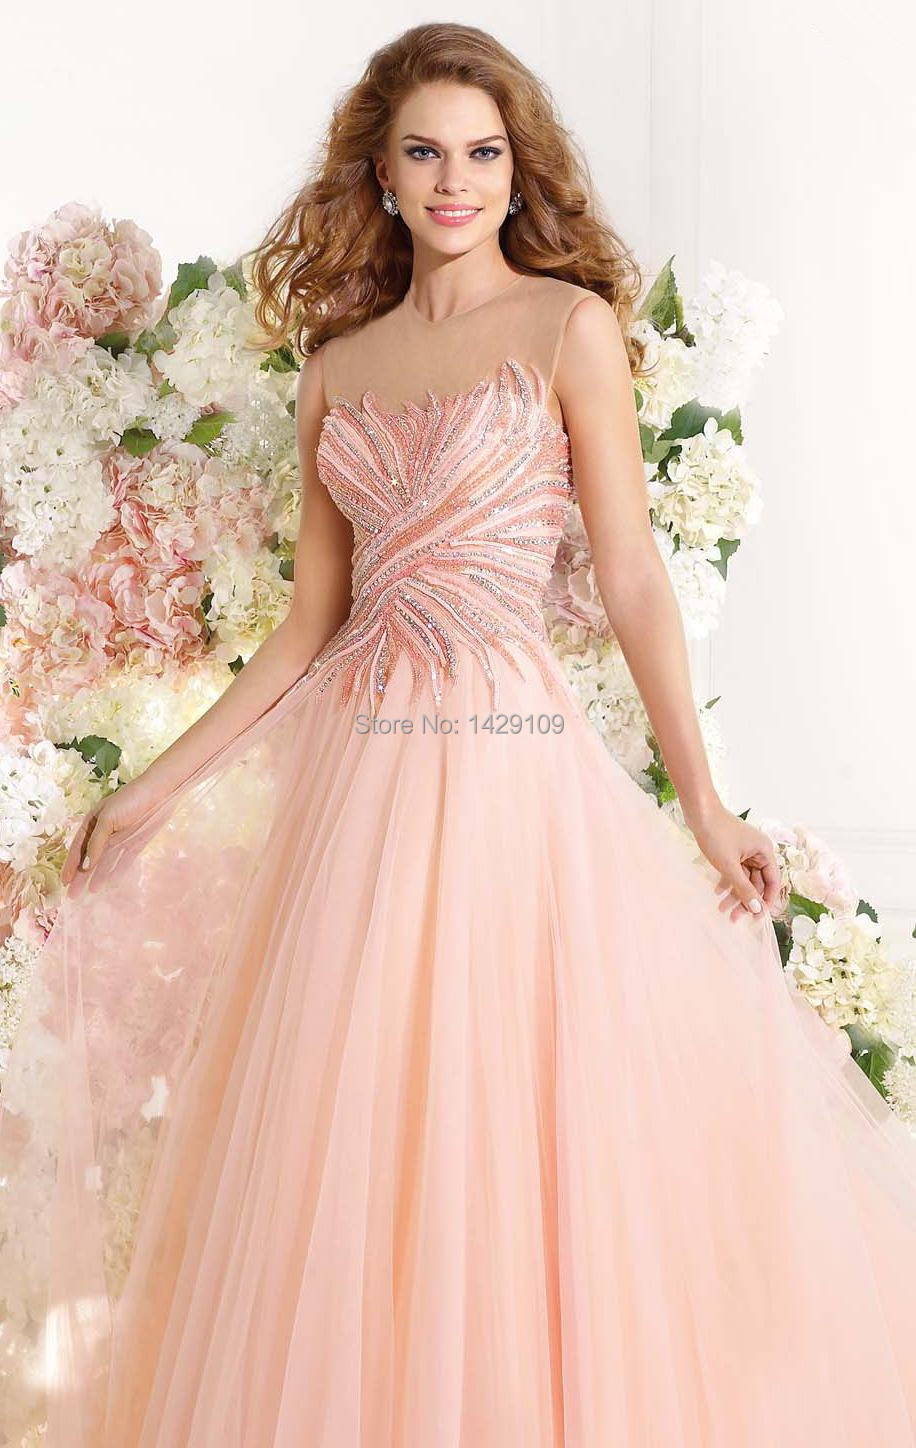 Robe De Soiree 2015 Romantic Tulle Long Evening Gowns Luxurious ...